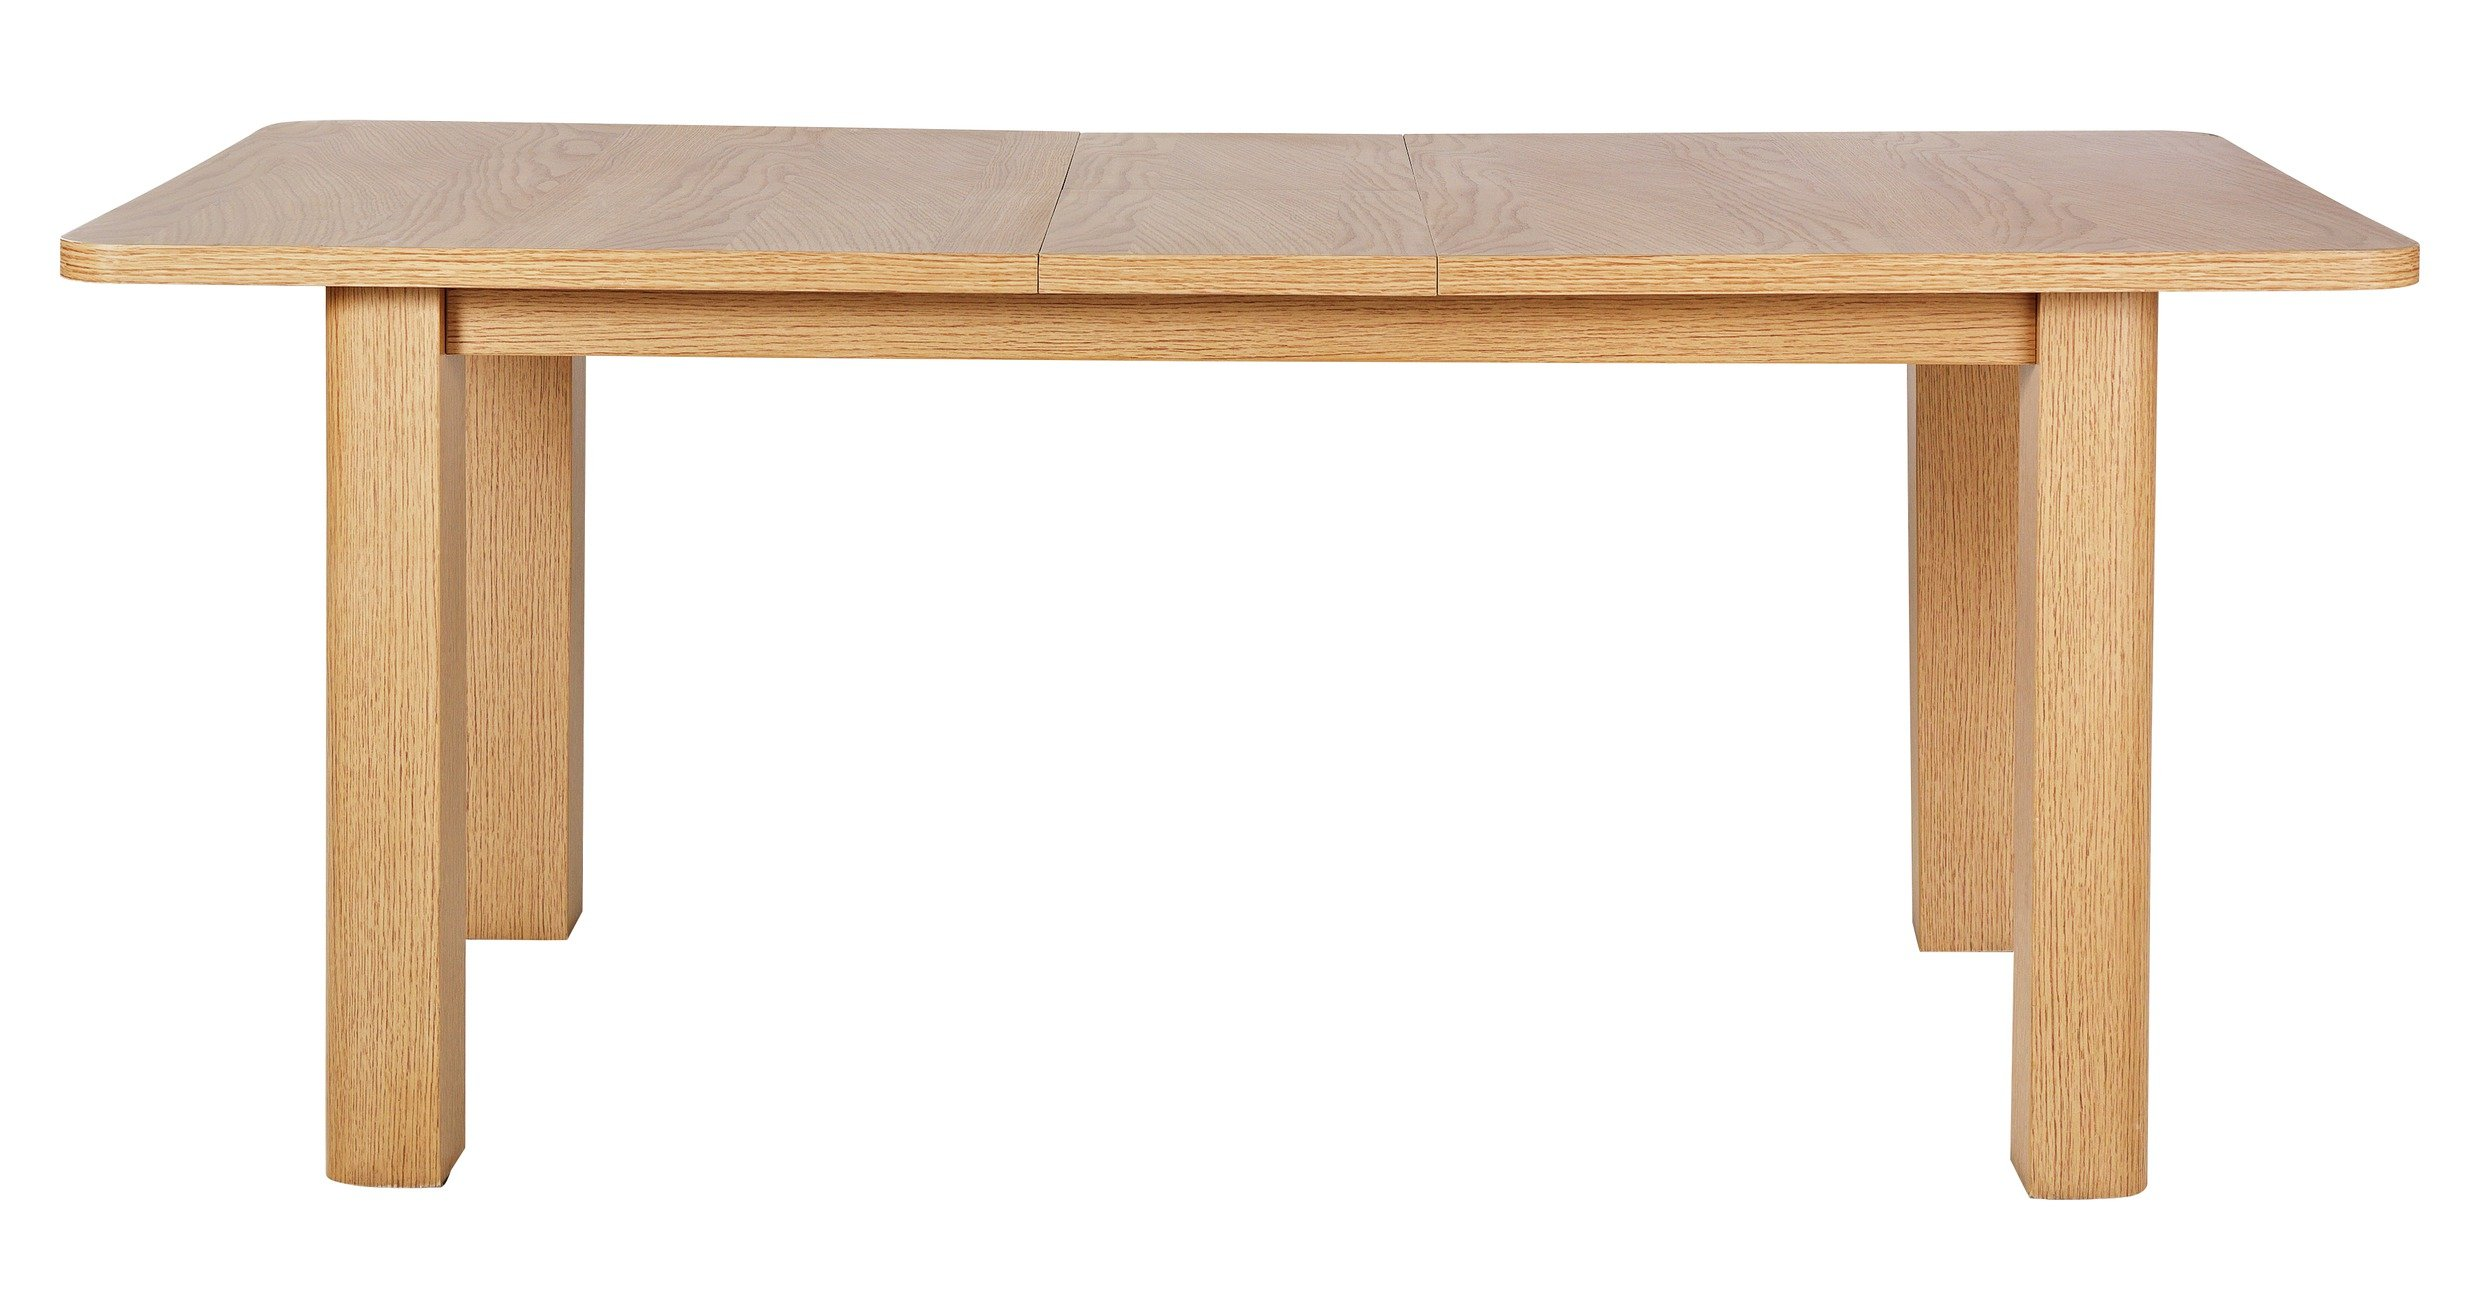 Buy HOME Shenley Oak Veneer Extendable Dining Table at  : 3922628RZ004AWebampw570amph513 from www.argos.co.uk size 570 x 513 jpeg 12kB